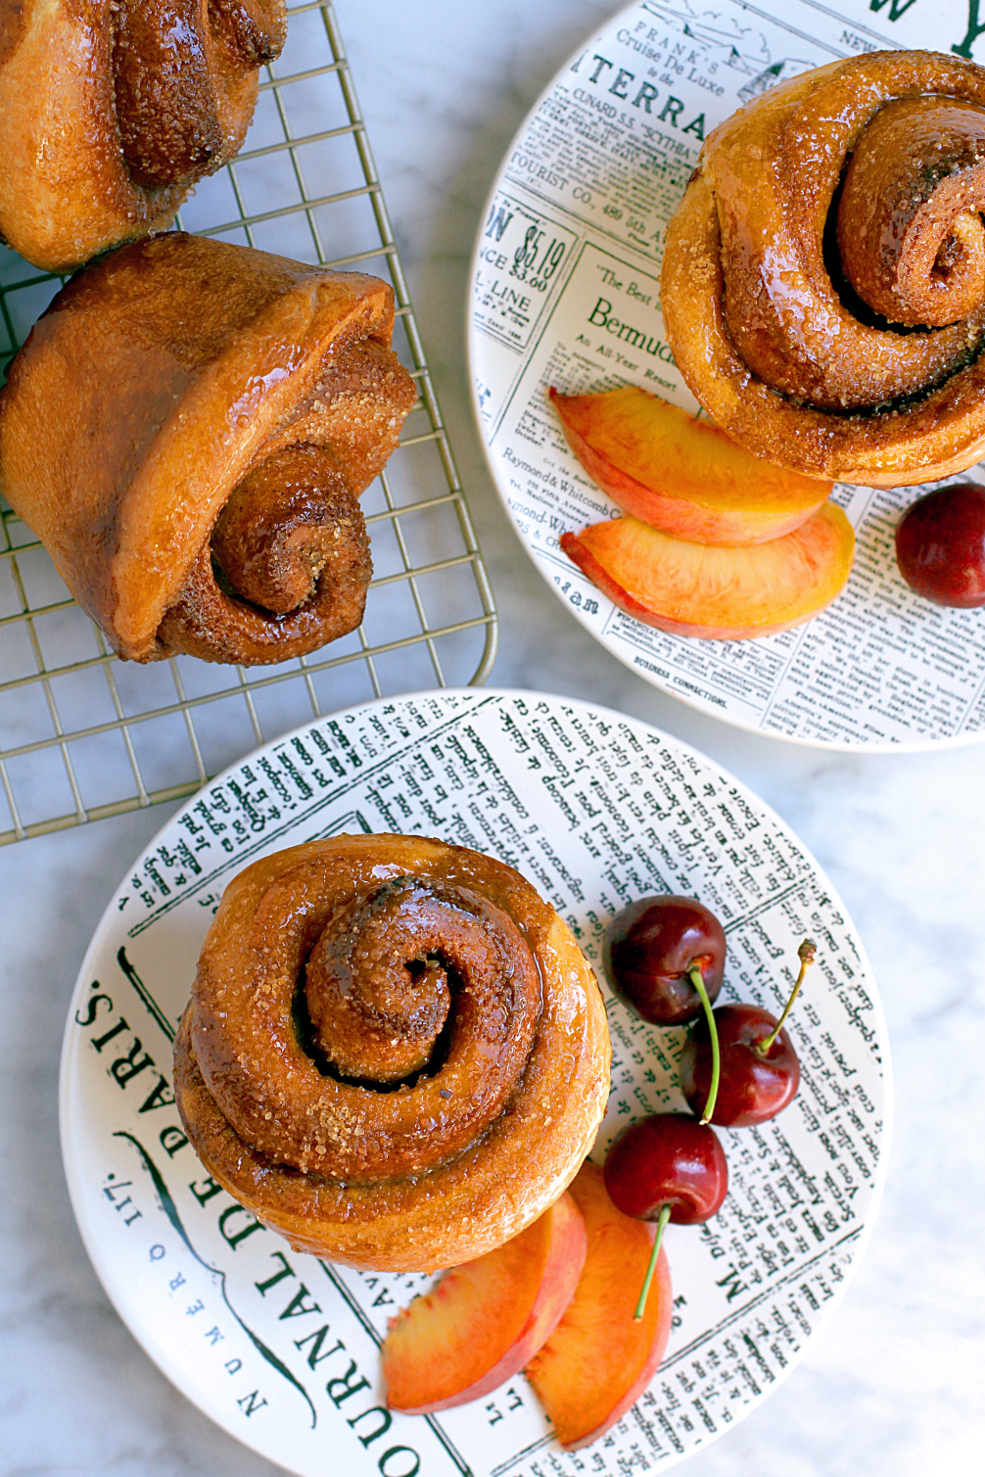 Image of mouthwatering morning buns.